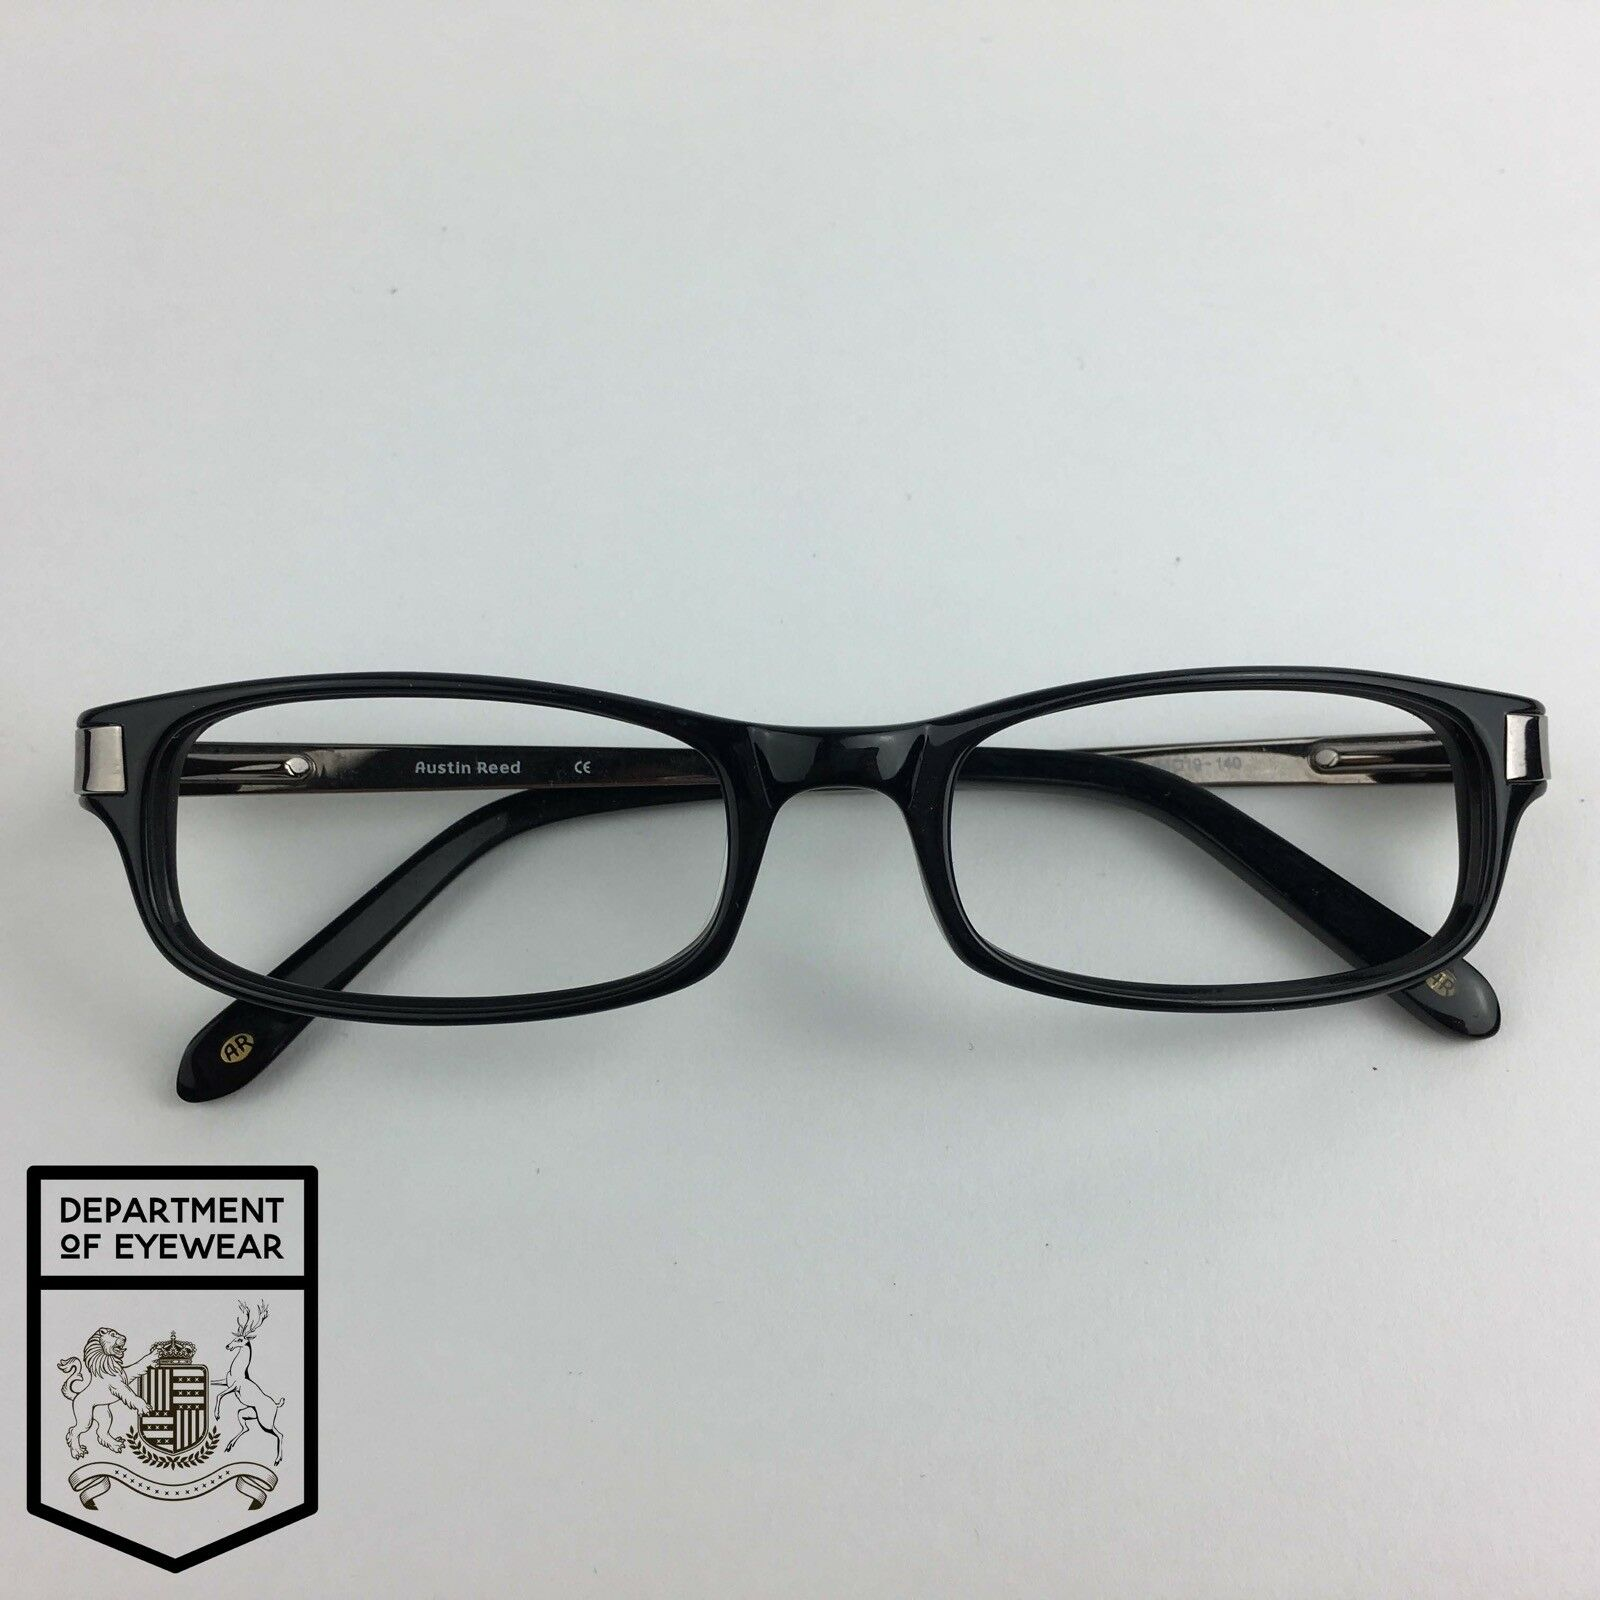 Austin Reed Eyeglasses Black Rectangle Glasses Frame Authentic Mod Ars 4009 For Sale Online Ebay